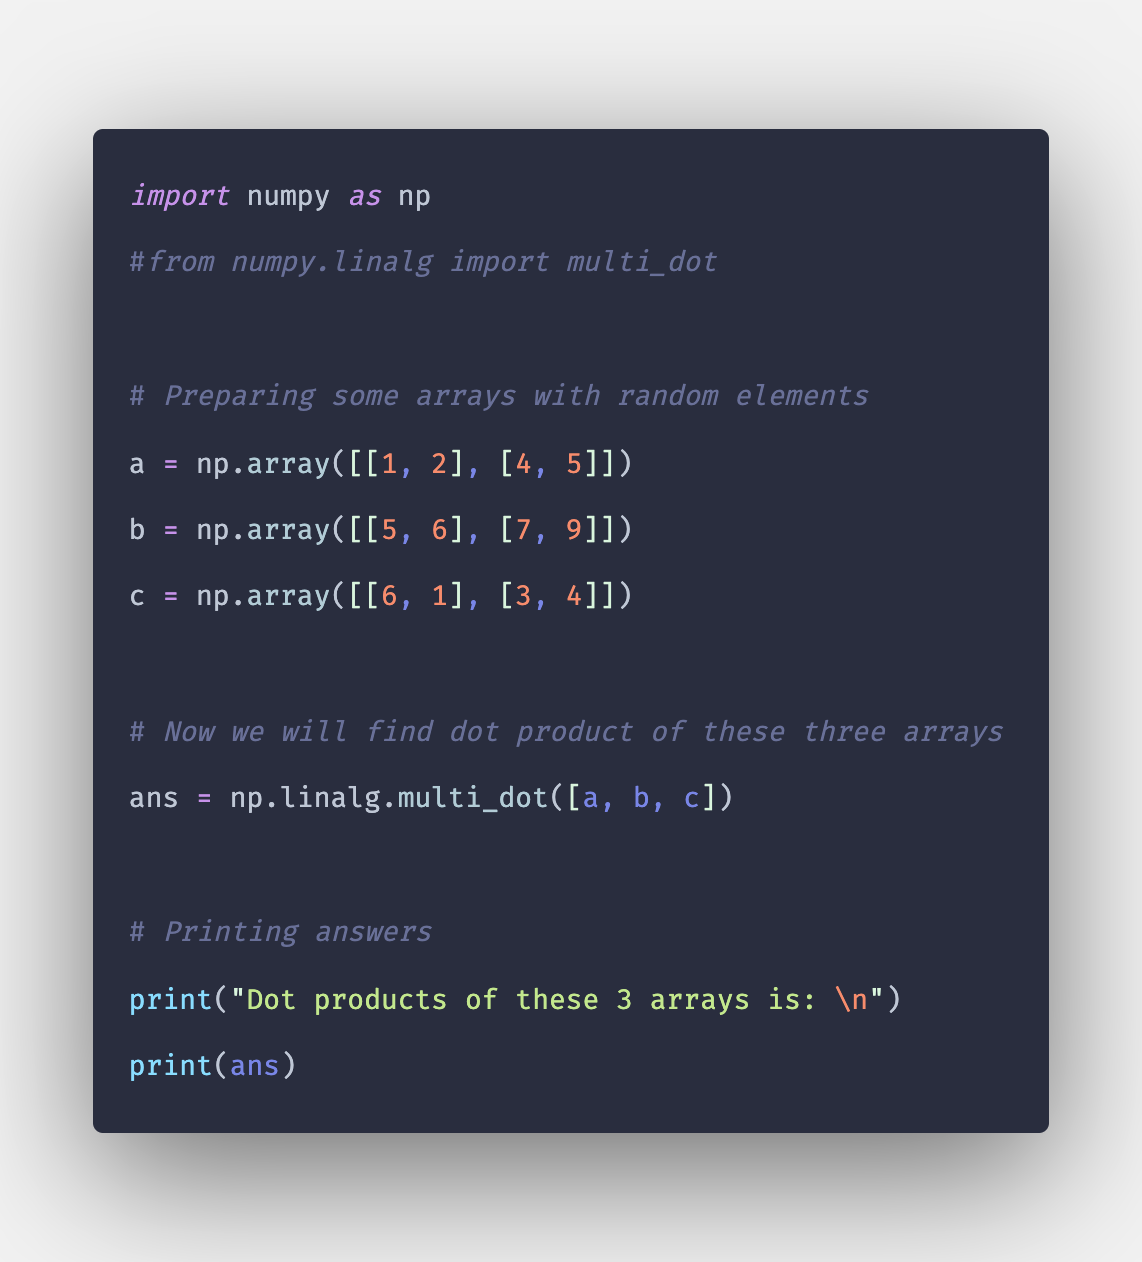 Numpy linalg multi_dot() Function in Python